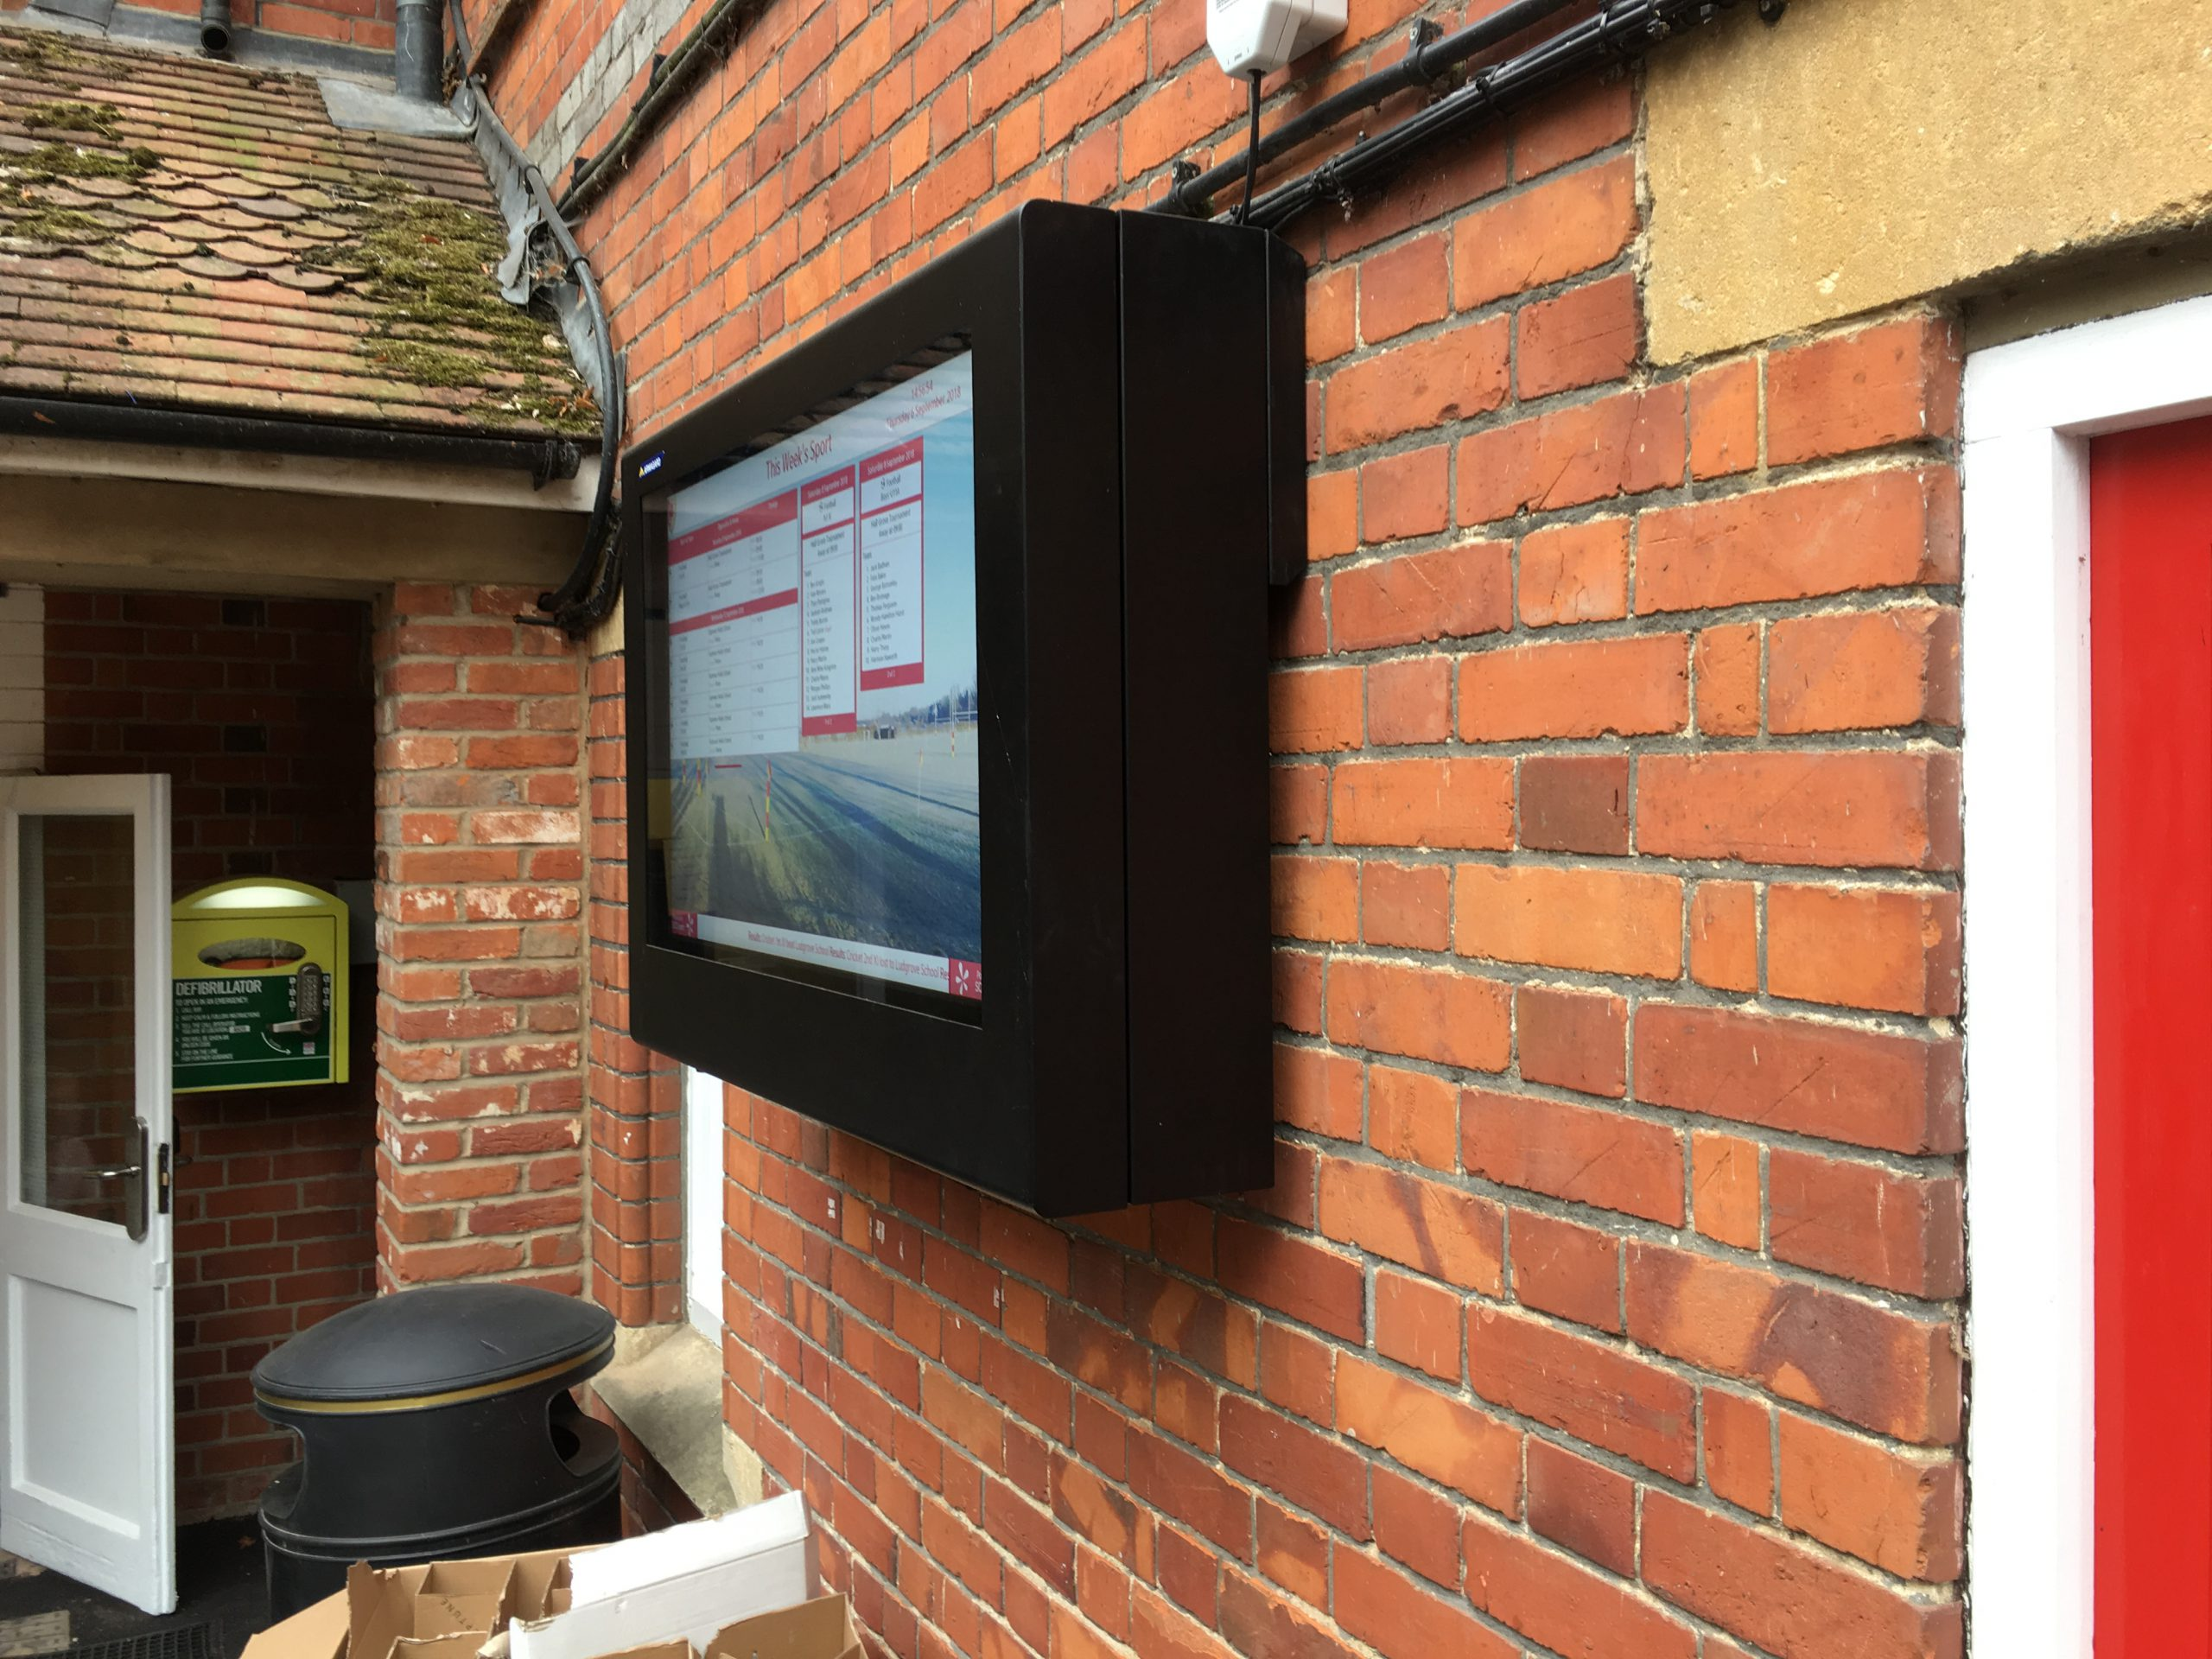 Digital signage with sports fixtures inside a weatherproof enclosure at Moulsford School